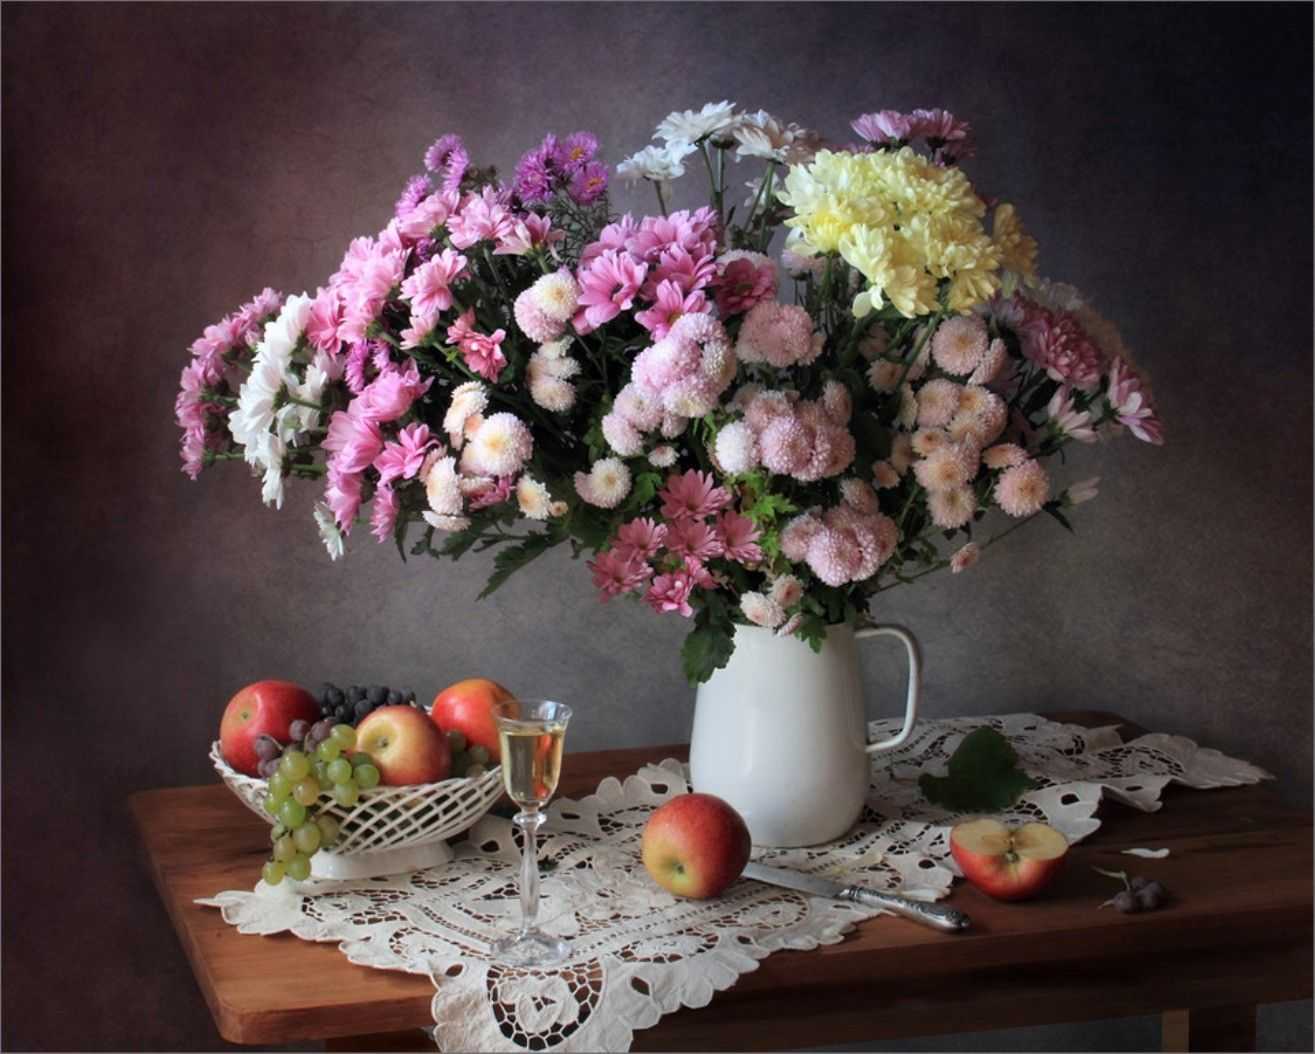 Desktop wallpaper fruits and flowers - Tasty Tones Photography Colors Pink Beauty Table Soft Glass Life Chrysanthemums Drink Fruits Nature Apples Still Flower Desktop Wallpaperdesktop